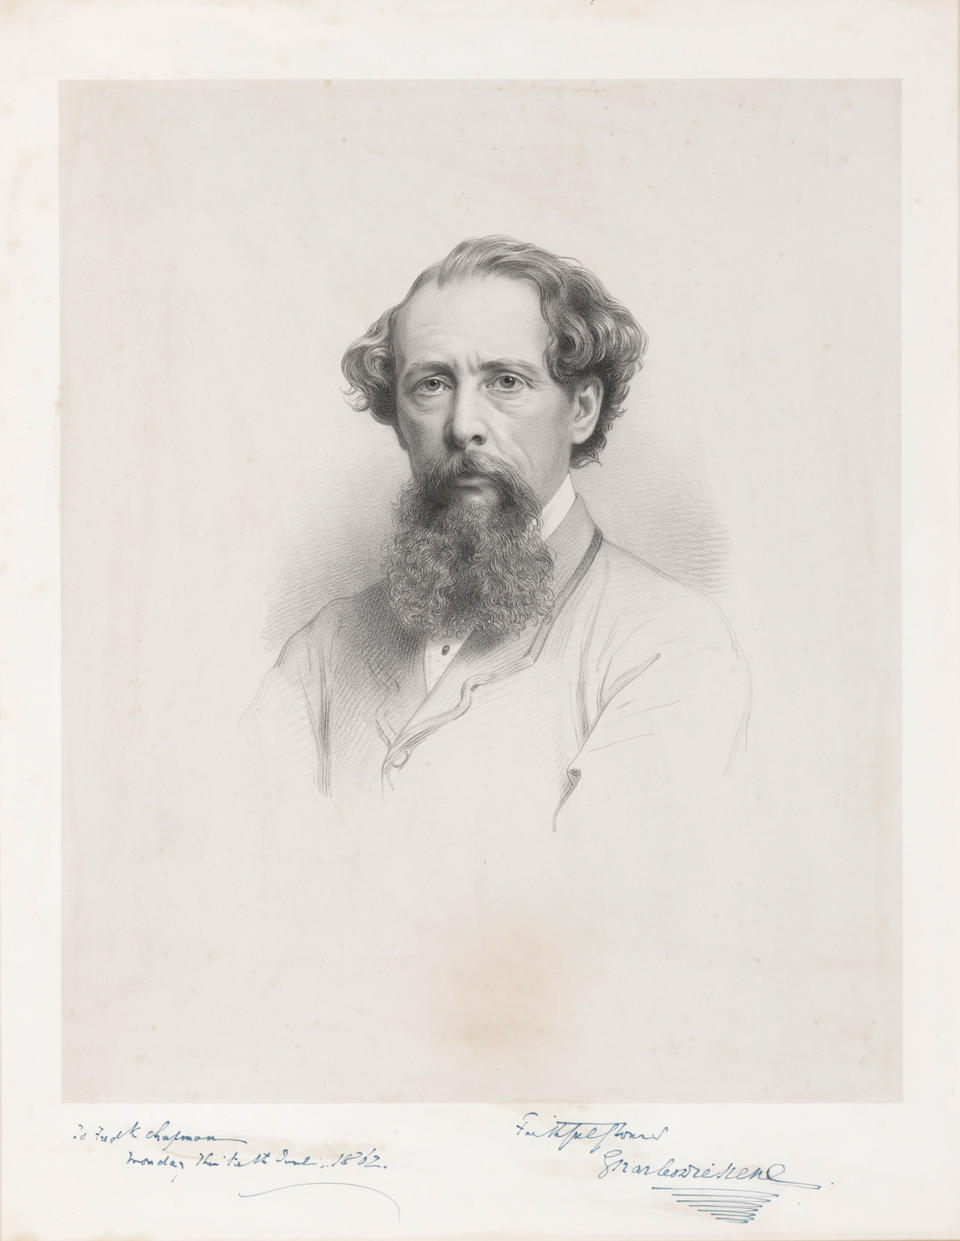 A LARGE FORMAT LITHOGRAPHIC PORTRAIT OF CHARLES DICKENS INSCRIBED TO HIS PUBLISHER. WATKINS, JOHN AND CHARLES, after. Portrait of Charles Dickens. Engraved portrait after the Watkins photograph, 345 x 285 mm (image), INSCRIBED to Dickens's publisher Frederic Chapman of Chapman & Hall, June 10, 1862,